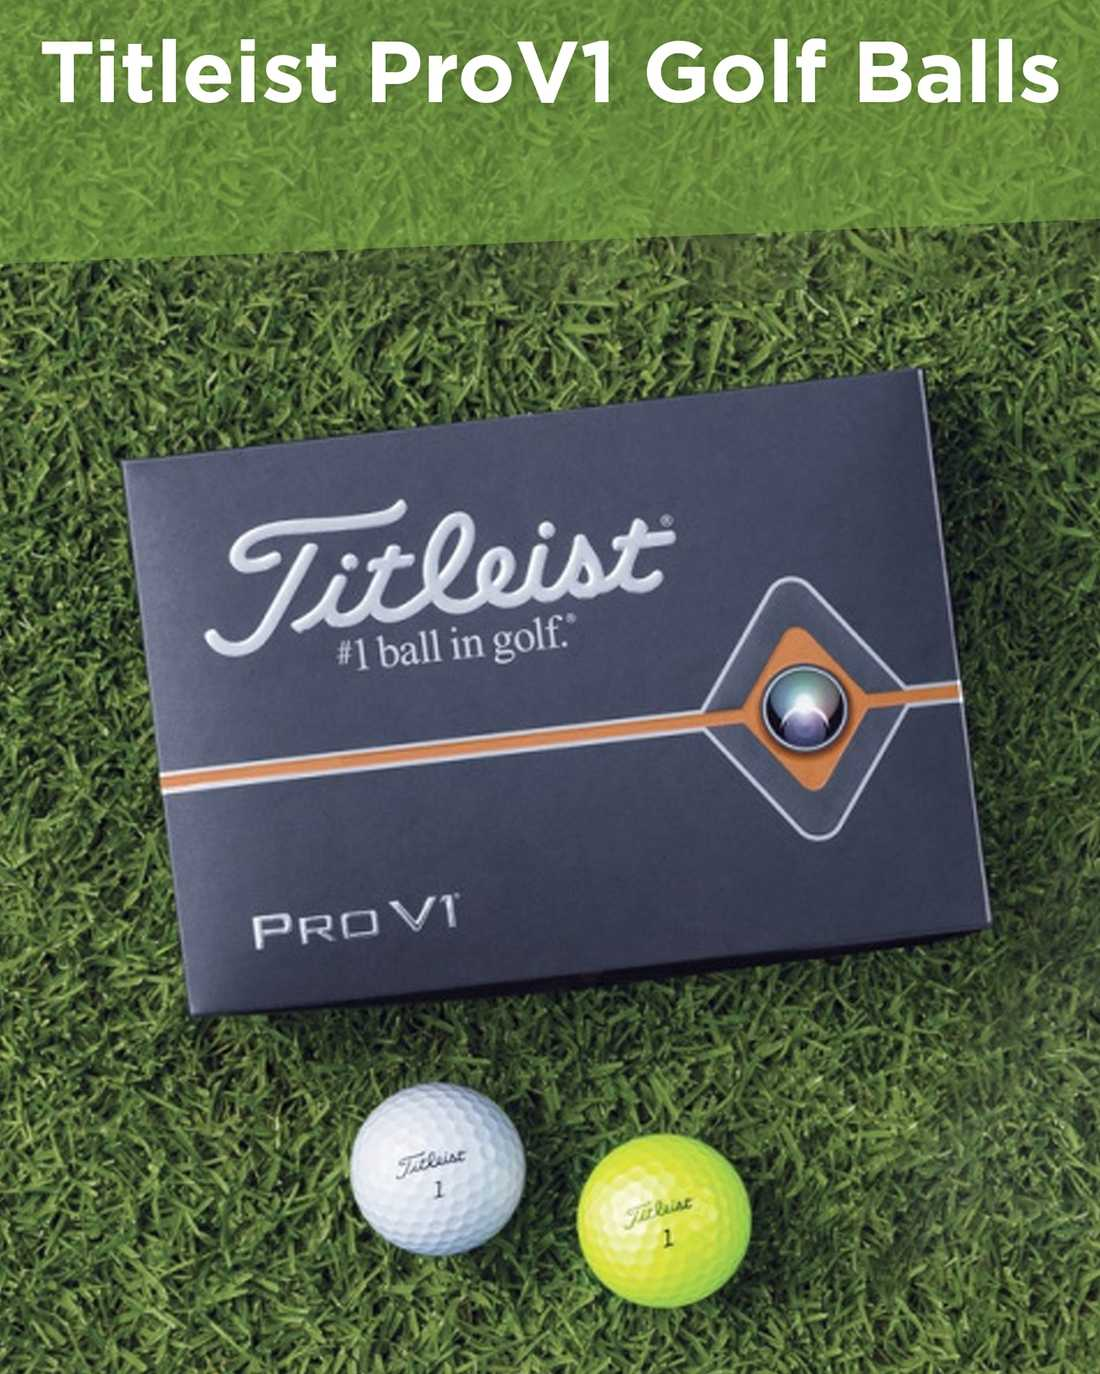 Titleist Golf Balls AIM